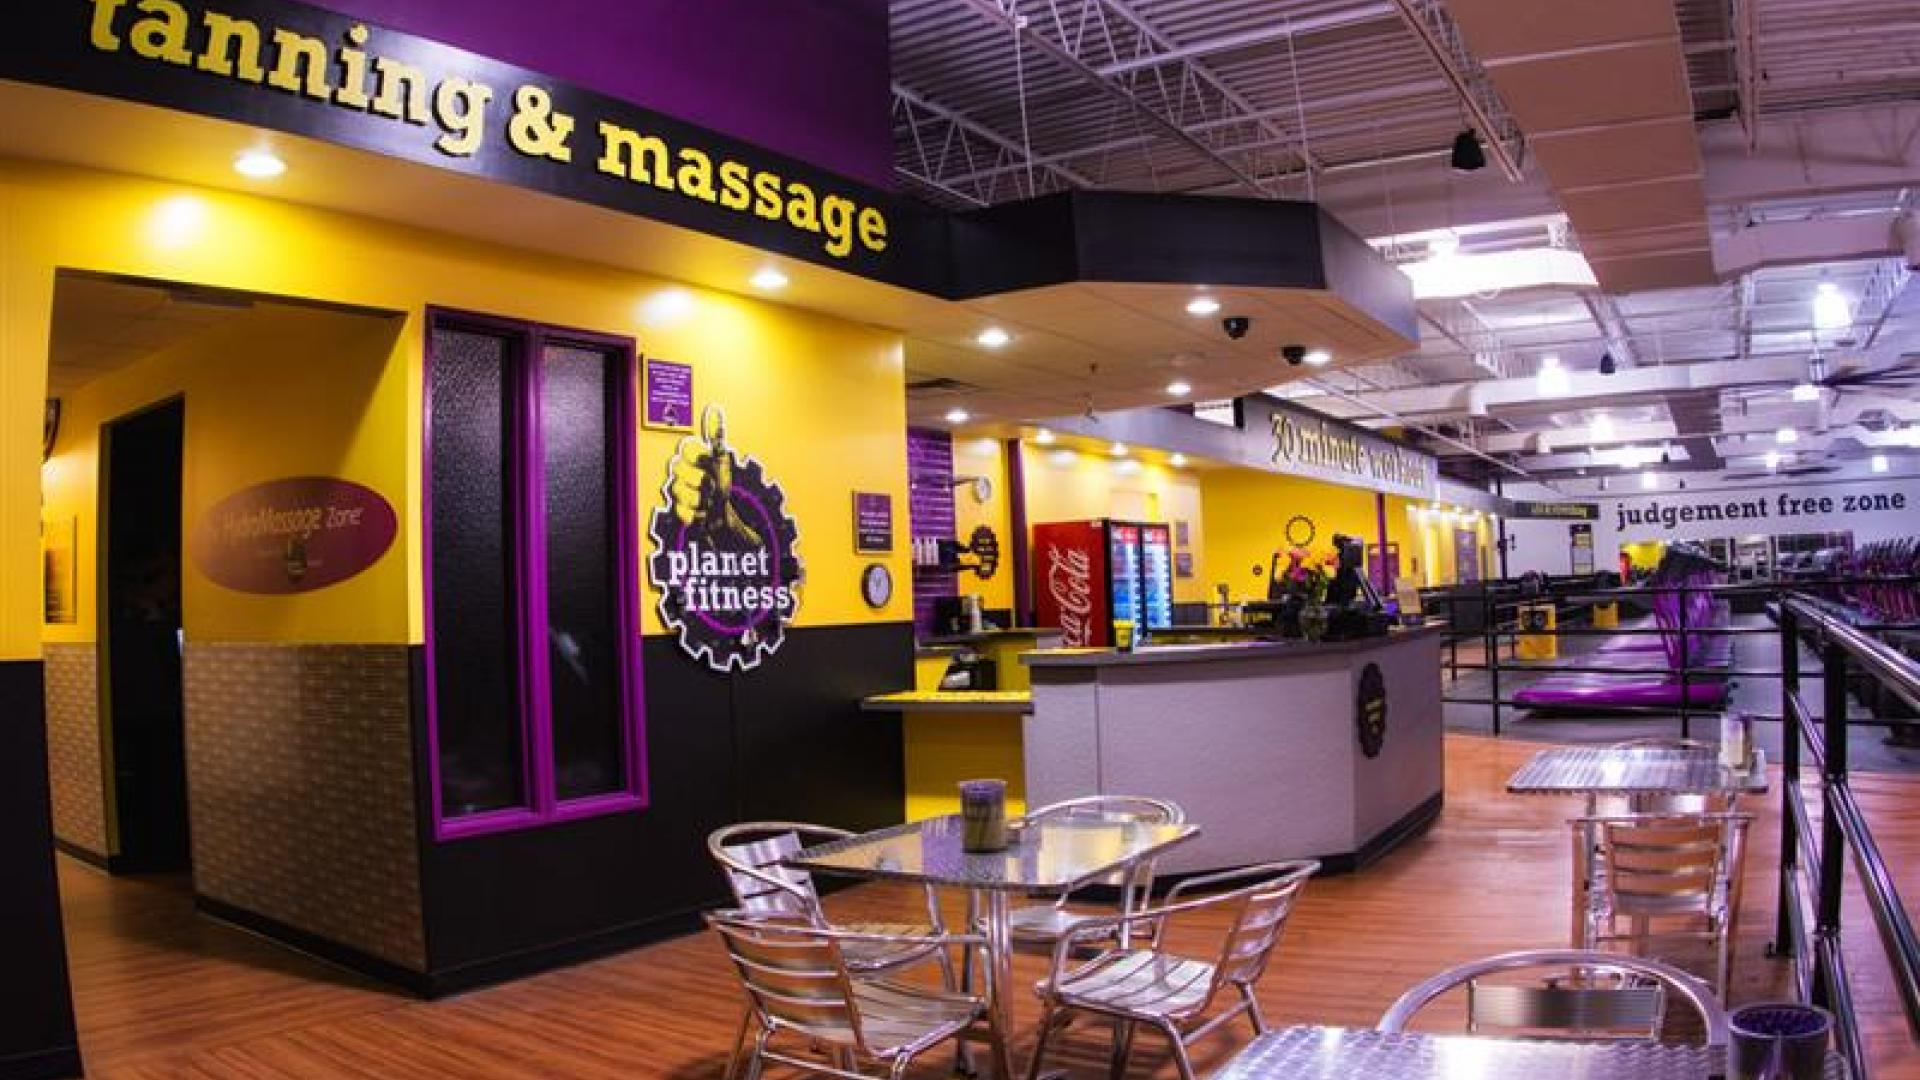 What Planet Fitness Offers Haircuts Planet Fitness